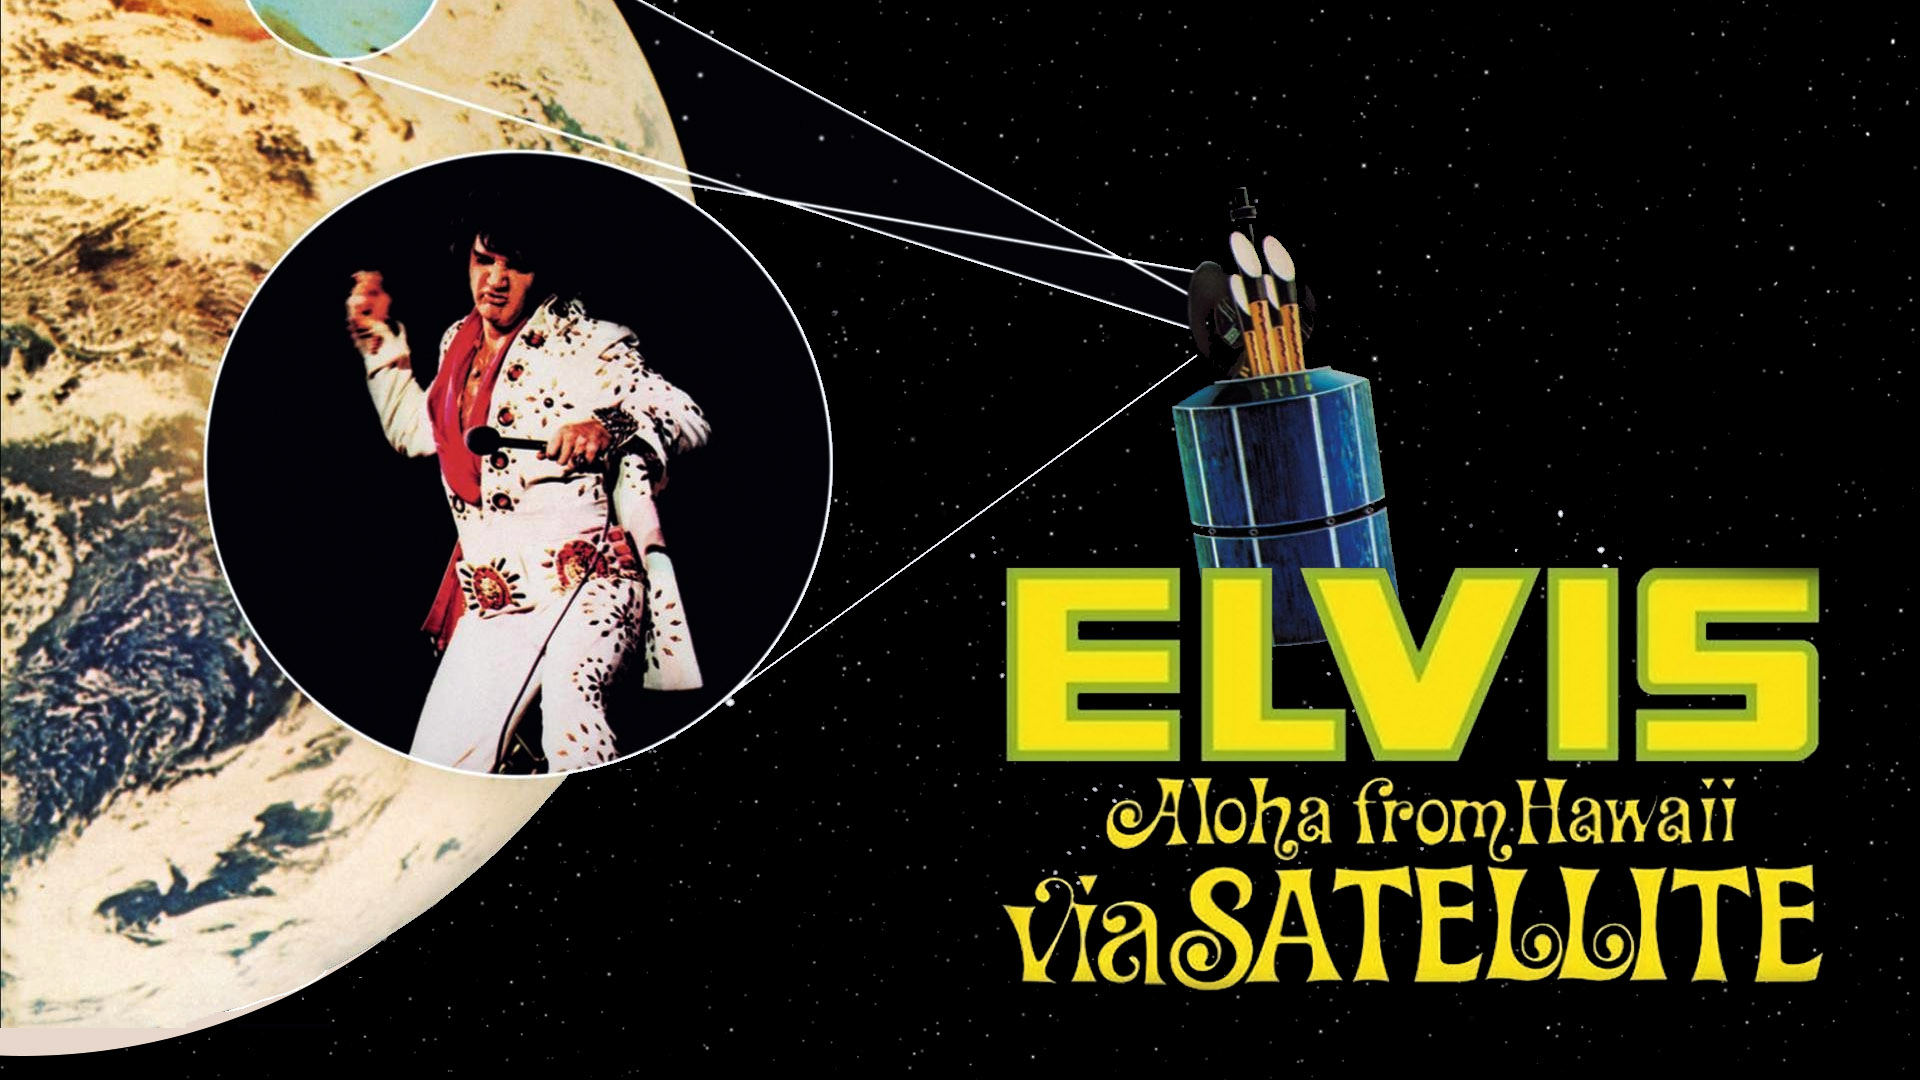 Elvis Aloha From Hawaii via Satellite